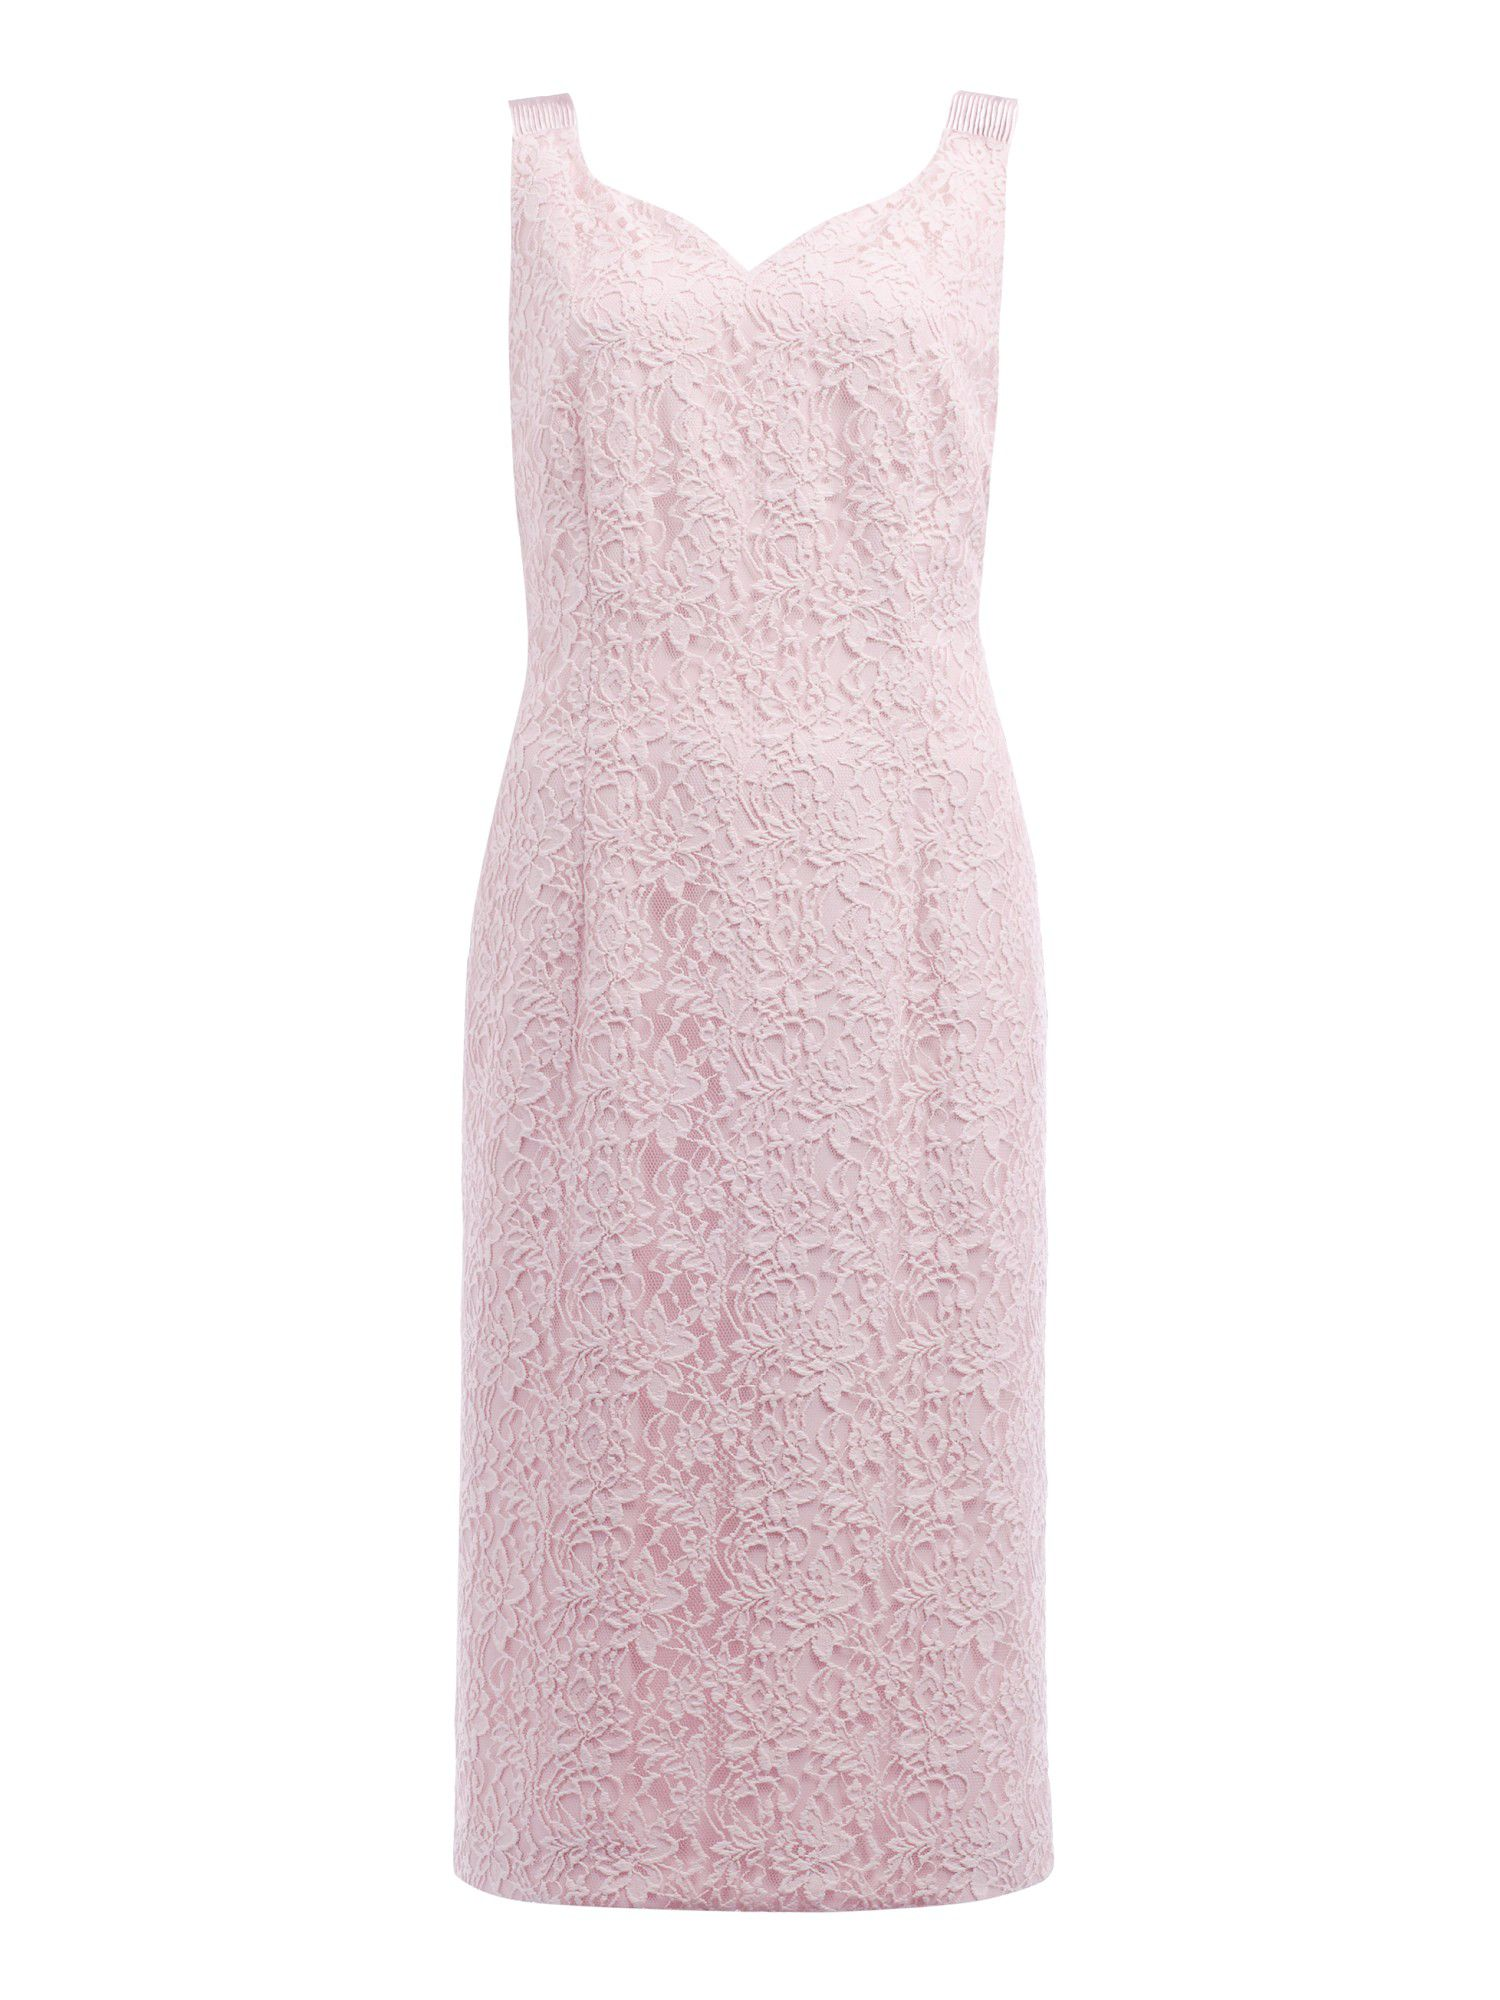 Shell pink lace shift dress